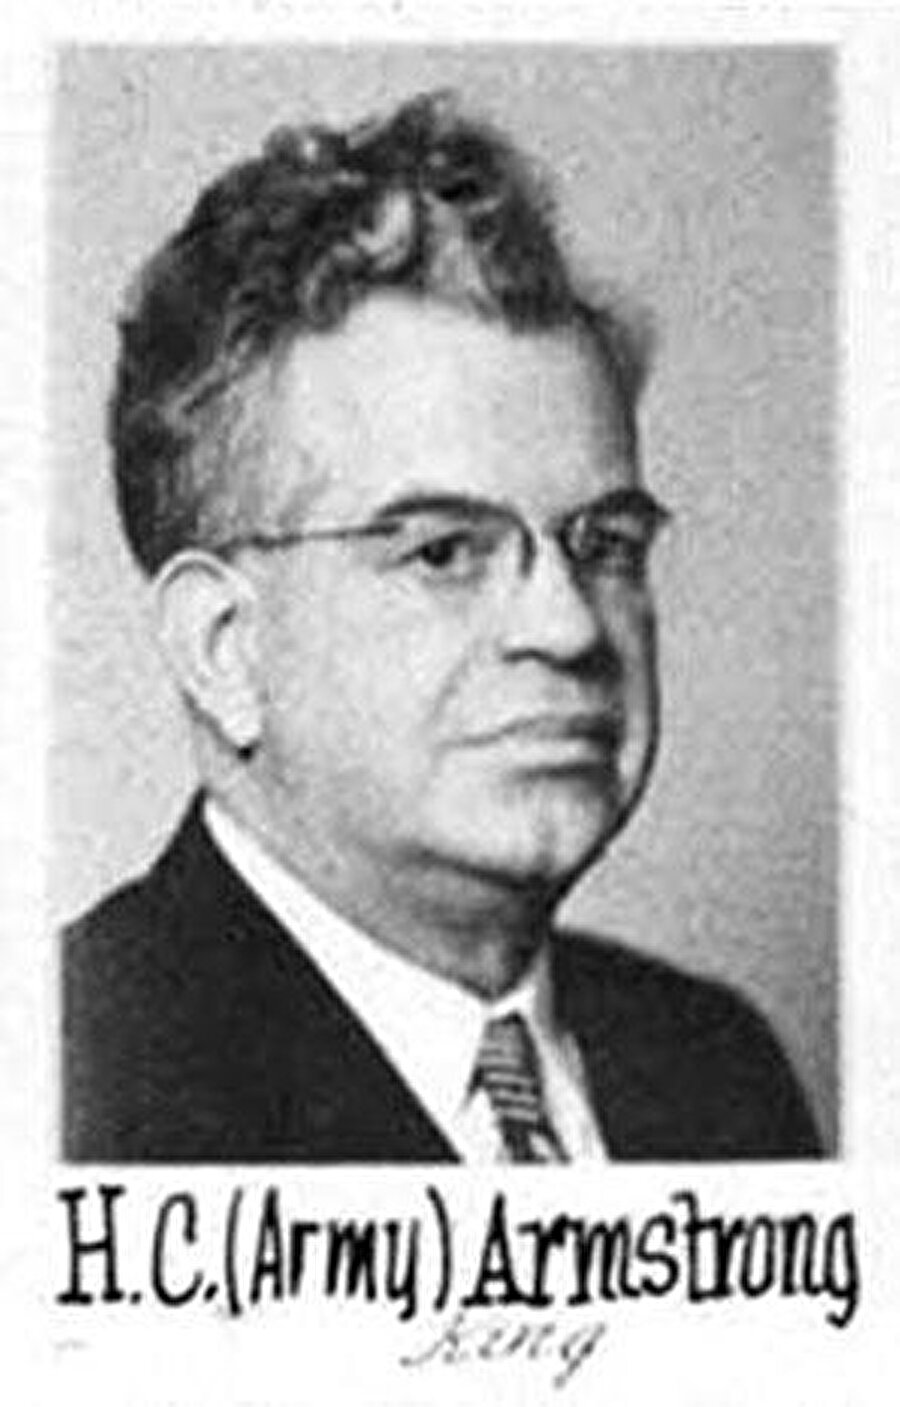 H. C. Armstrong